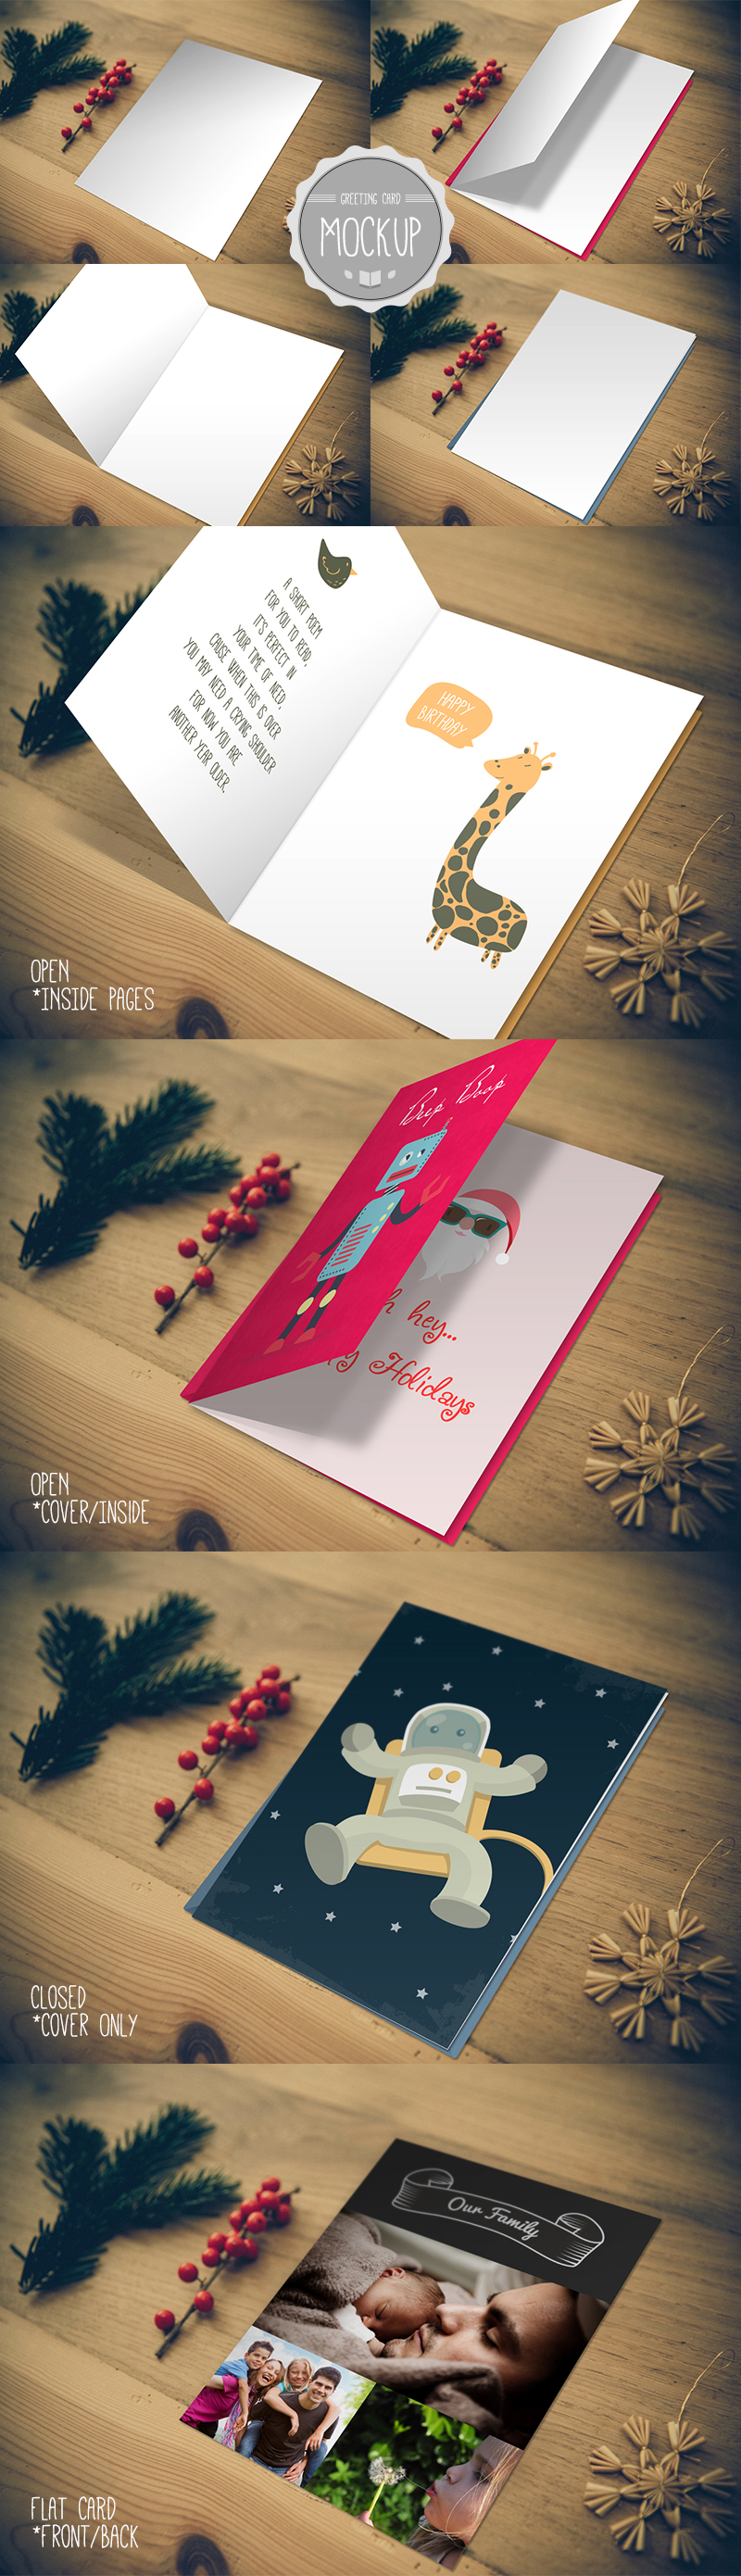 Greeting Card Mockup – Photoshop PSD Template – Display Holiday, Birthday, Wedding Cards